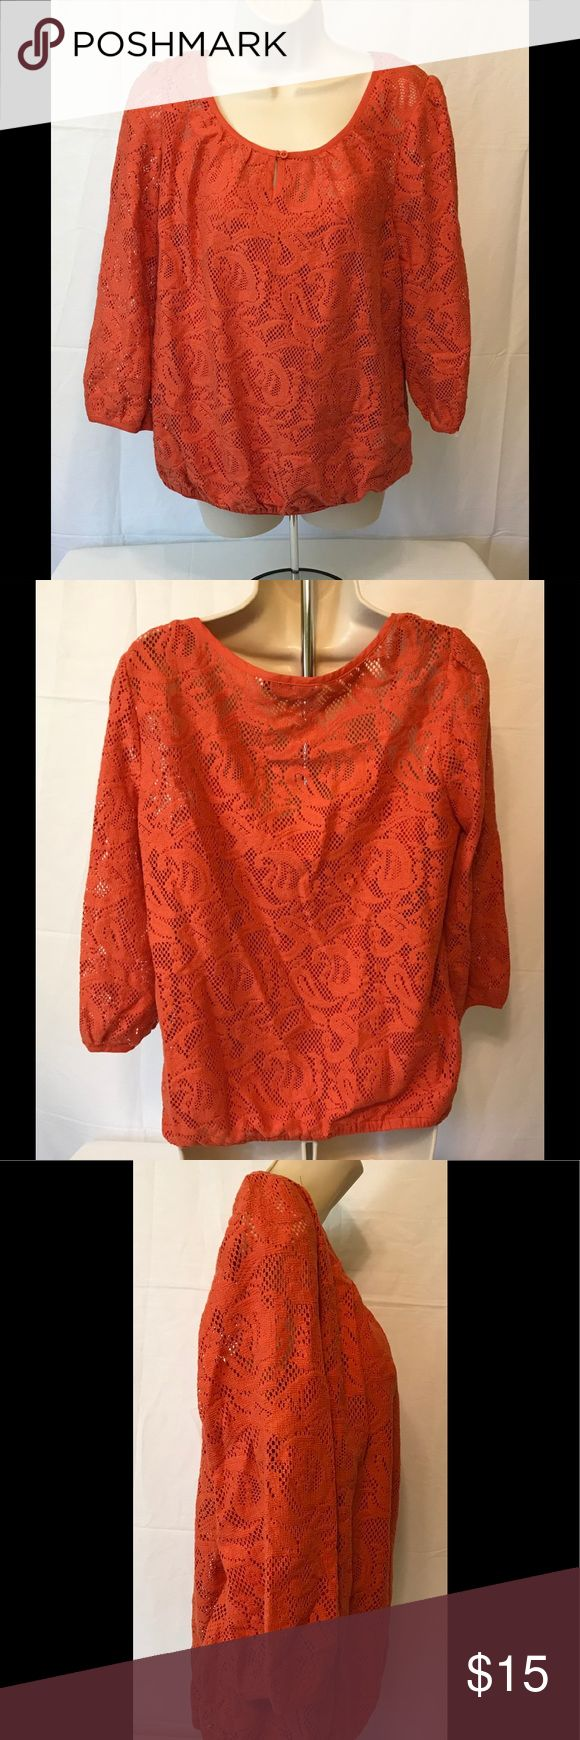 "Casual Collection Debenhams Woman's 14 Blouse NICE Casual Collection Debenhams Woman's Blouse Orange With attached tank top size 14.Beautiful blouse free of stains, rips, odors. This is very pretty can be worn with jeans, slacks, leggings. Measurements are approximate laying flat  Arm pit to arm pit 22"" Length from top of blouse center back to hem line 22.5"" Thanks for looking. I can bundle with other items if you like. Item comes from a smoke free home casual collection Tops Blouses"